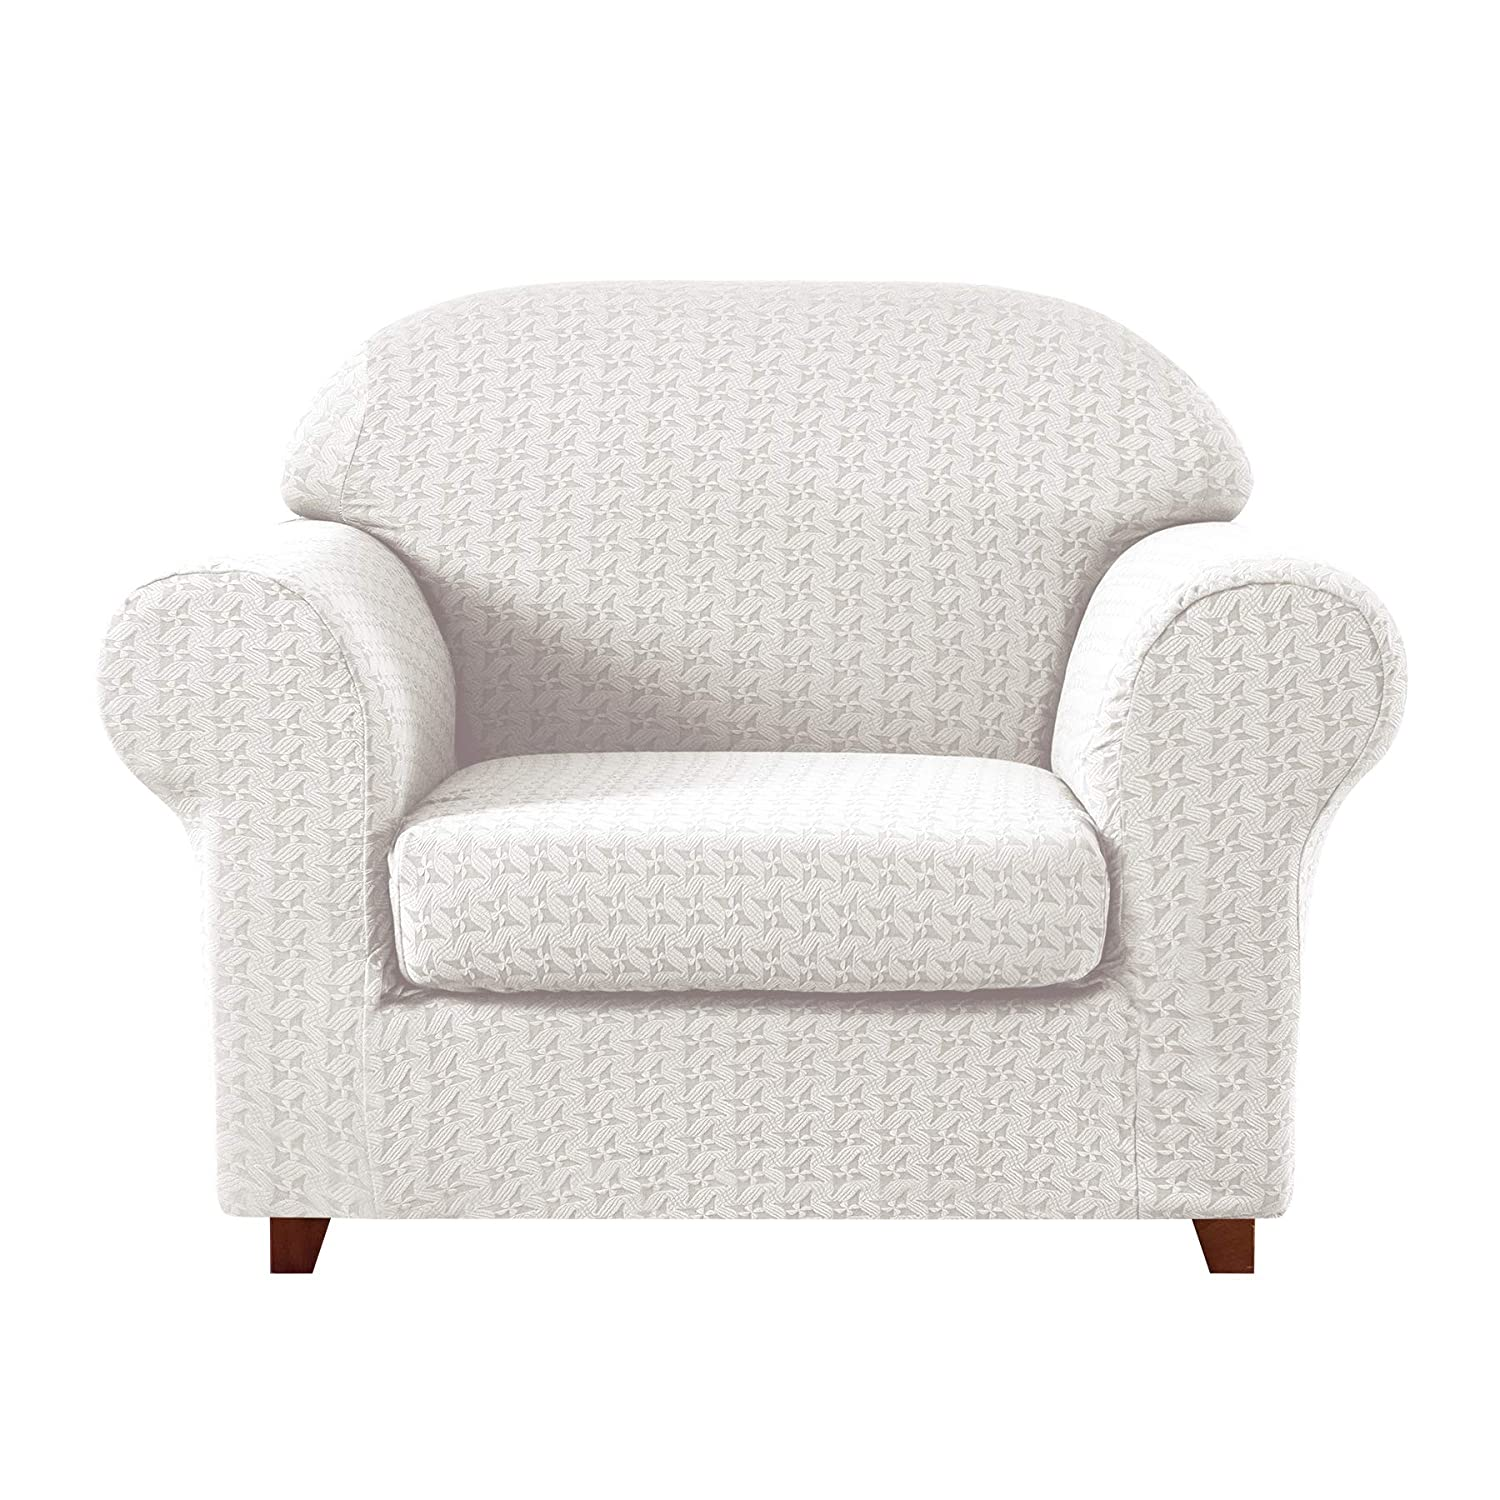 Wondrous Subrtex 2 Piece High Stretch Slipcovers Durable Soft Jacquard Fabric Machine Washable Sofa Covers Chair Off White Embossed Andrewgaddart Wooden Chair Designs For Living Room Andrewgaddartcom